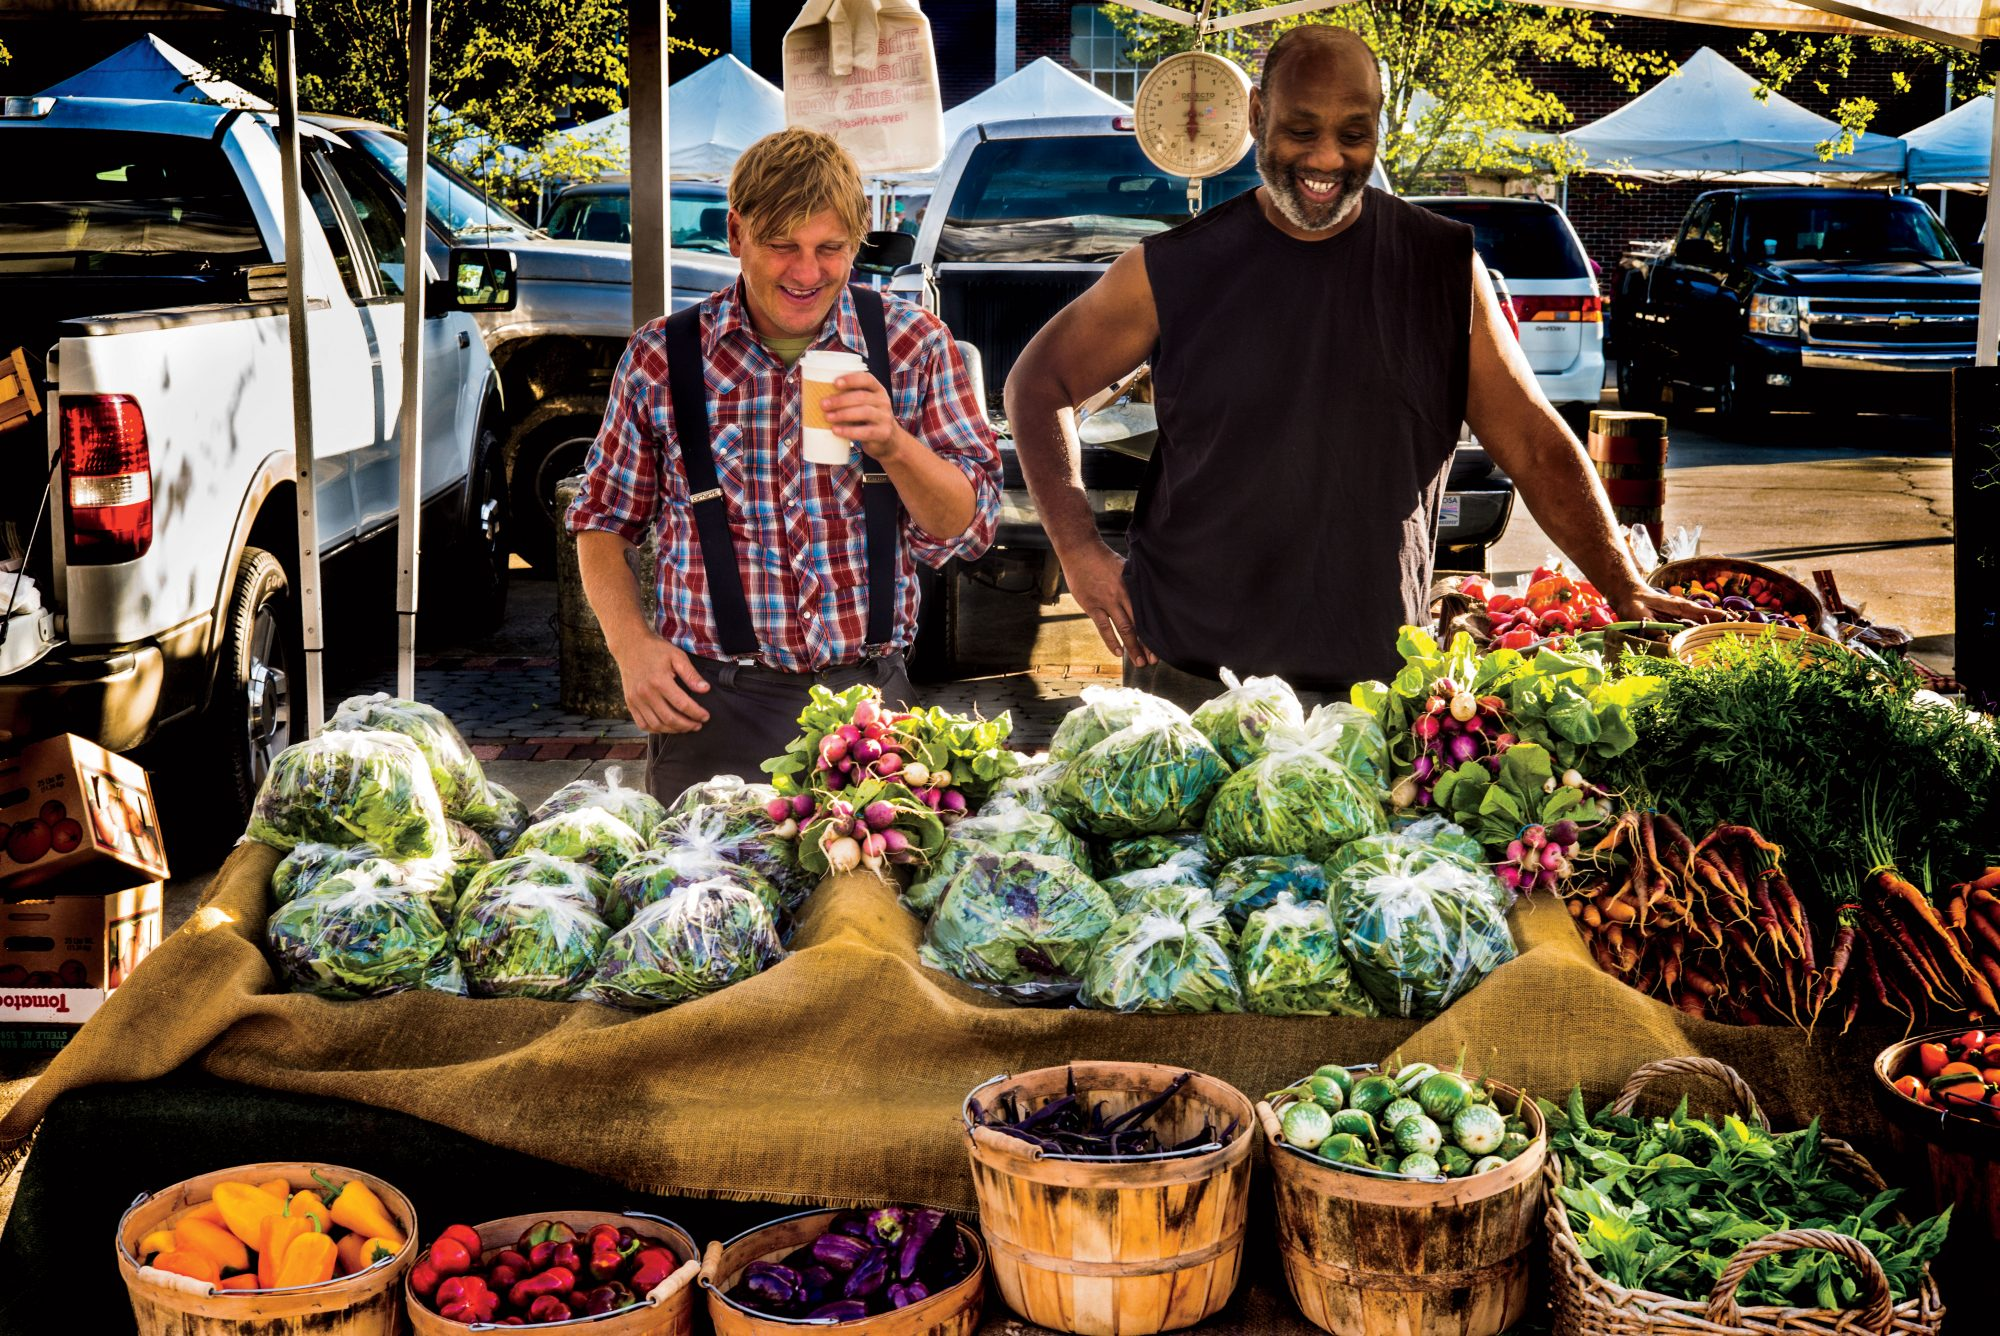 Pepper Place Farmers Market in Birmingham, Al